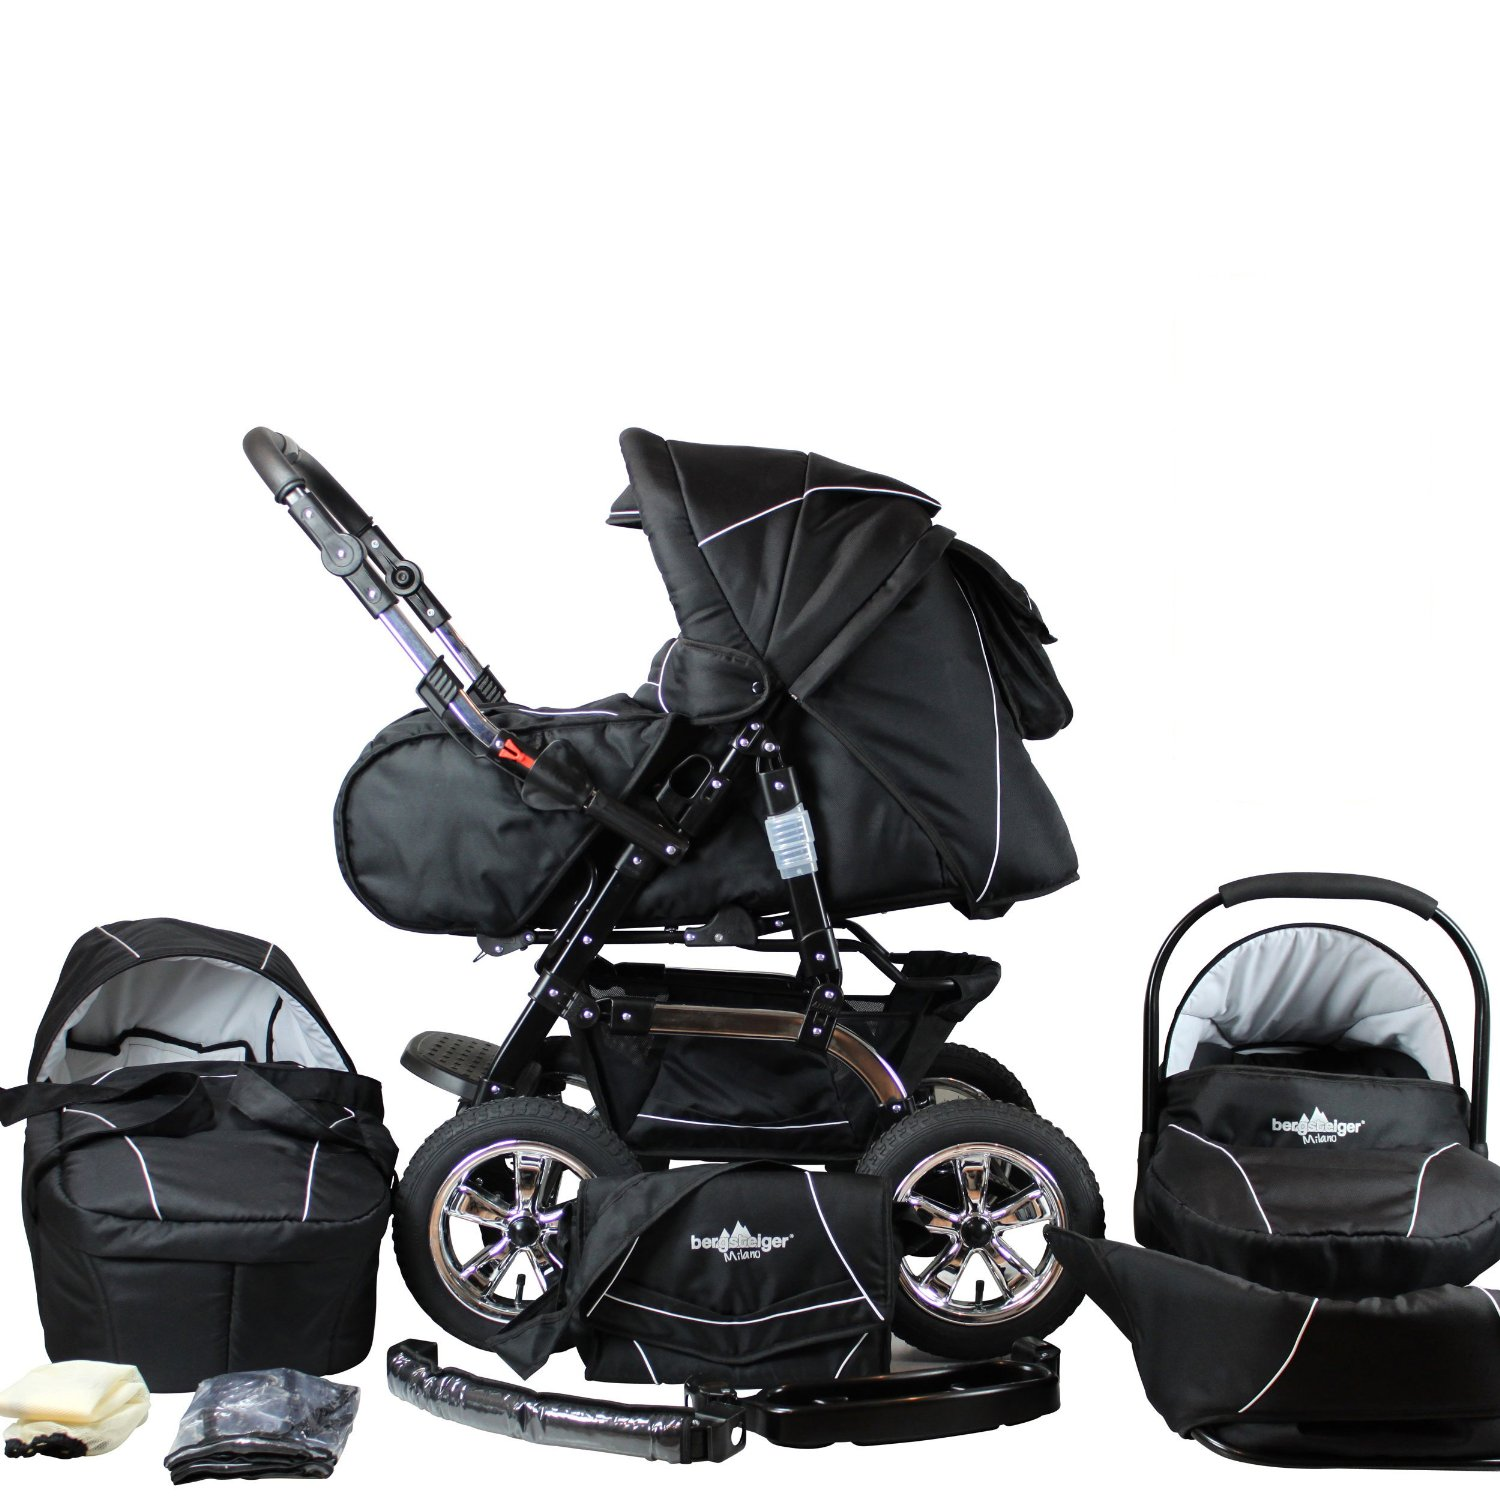 kinderwagen mit vier gleich gro en r dern vergleich milano. Black Bedroom Furniture Sets. Home Design Ideas